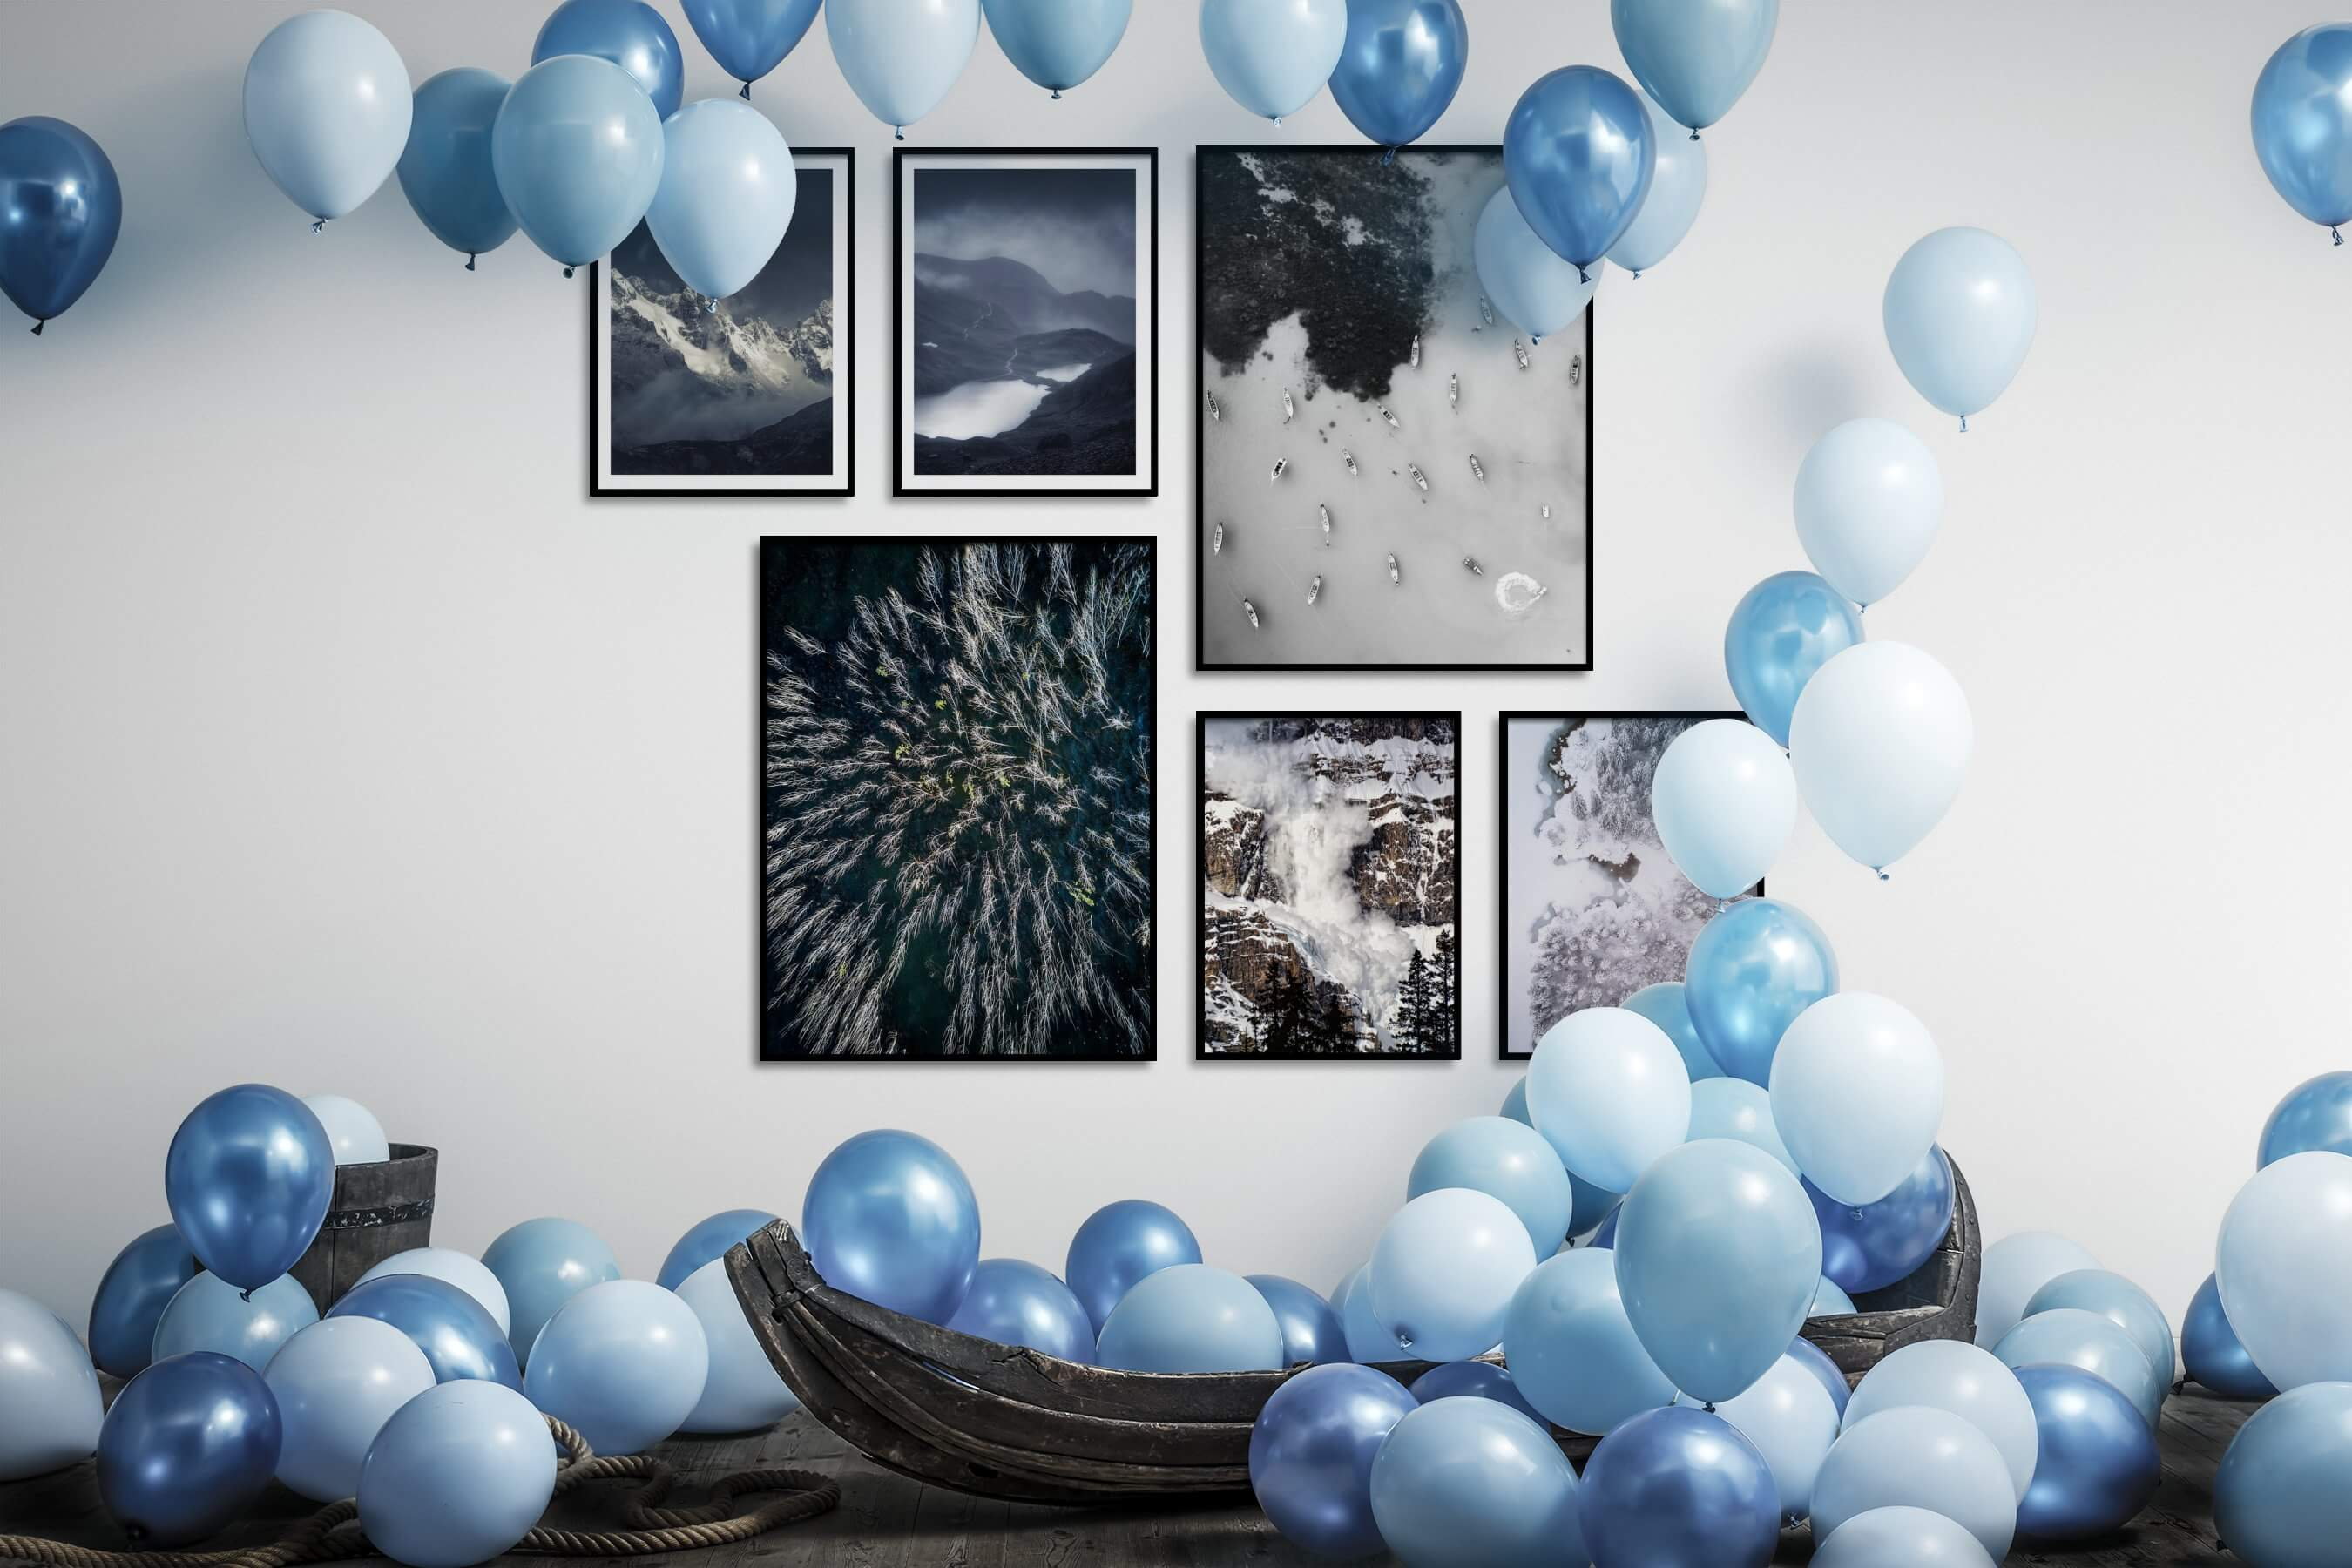 Gallery wall idea with six framed pictures arranged on a wall depicting Nature, For the Moderate, Black & White, and Beach & Water